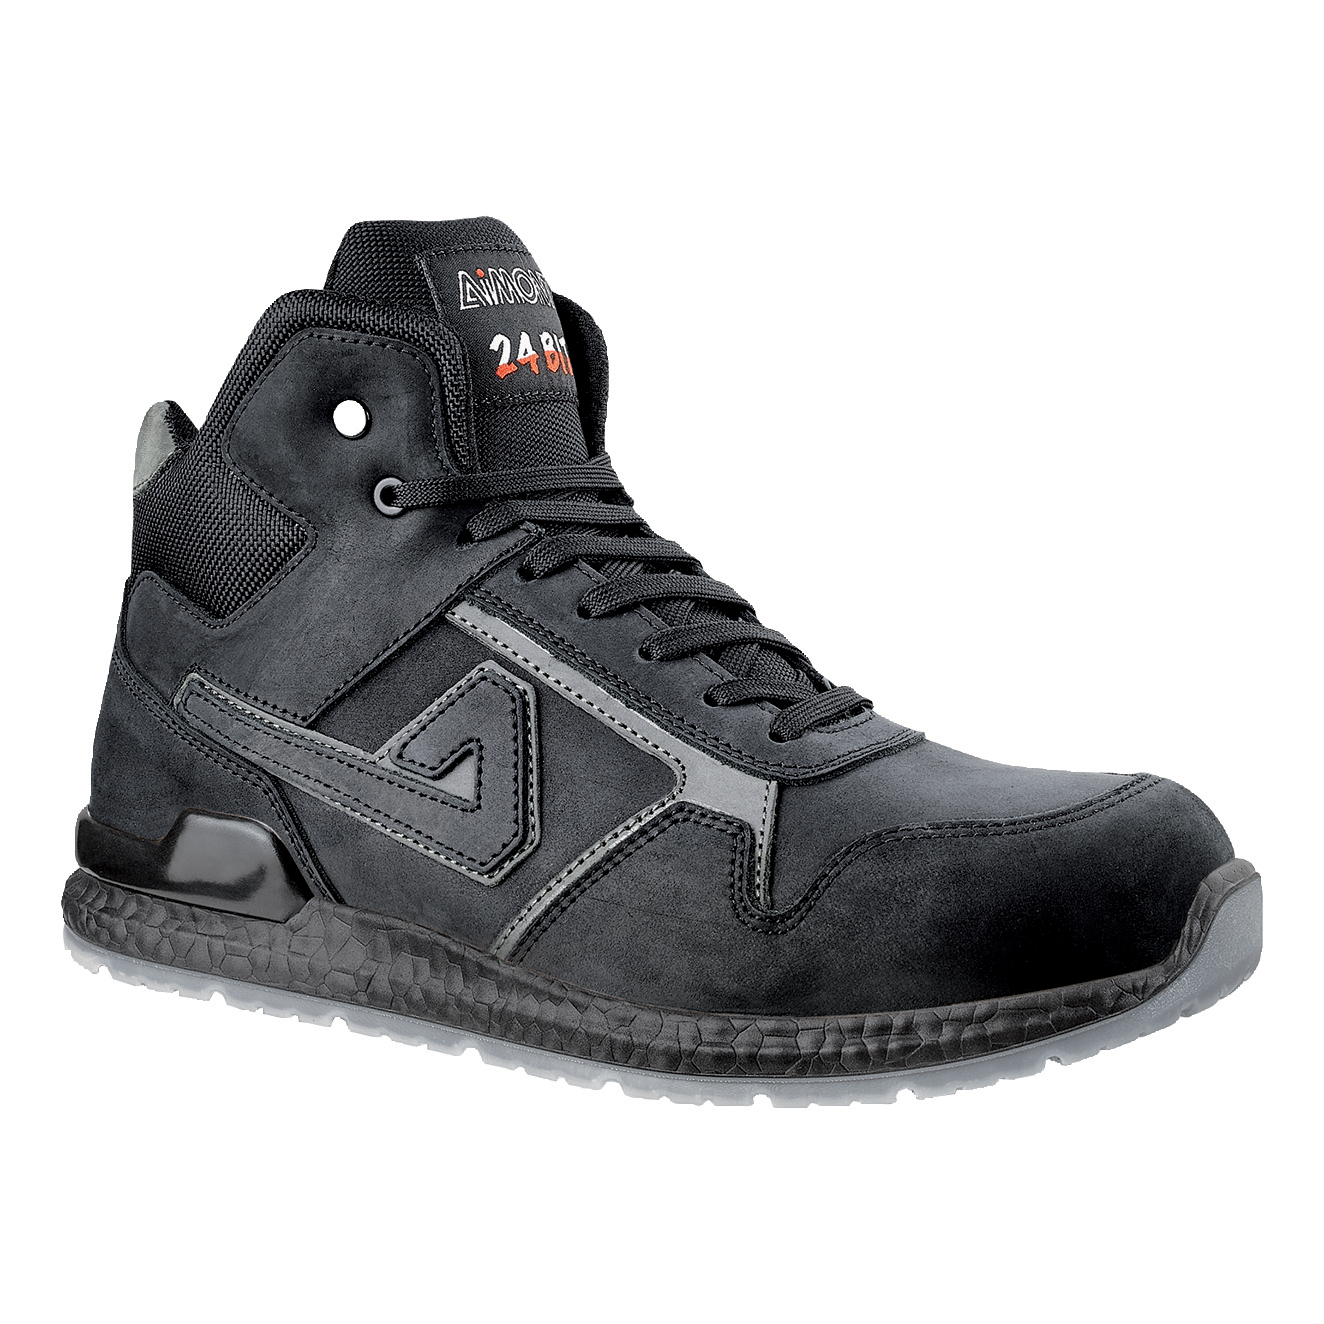 Aimont Kanye Safety Boots Protective Toecap Size 10 Black Ref AB10410 Pair